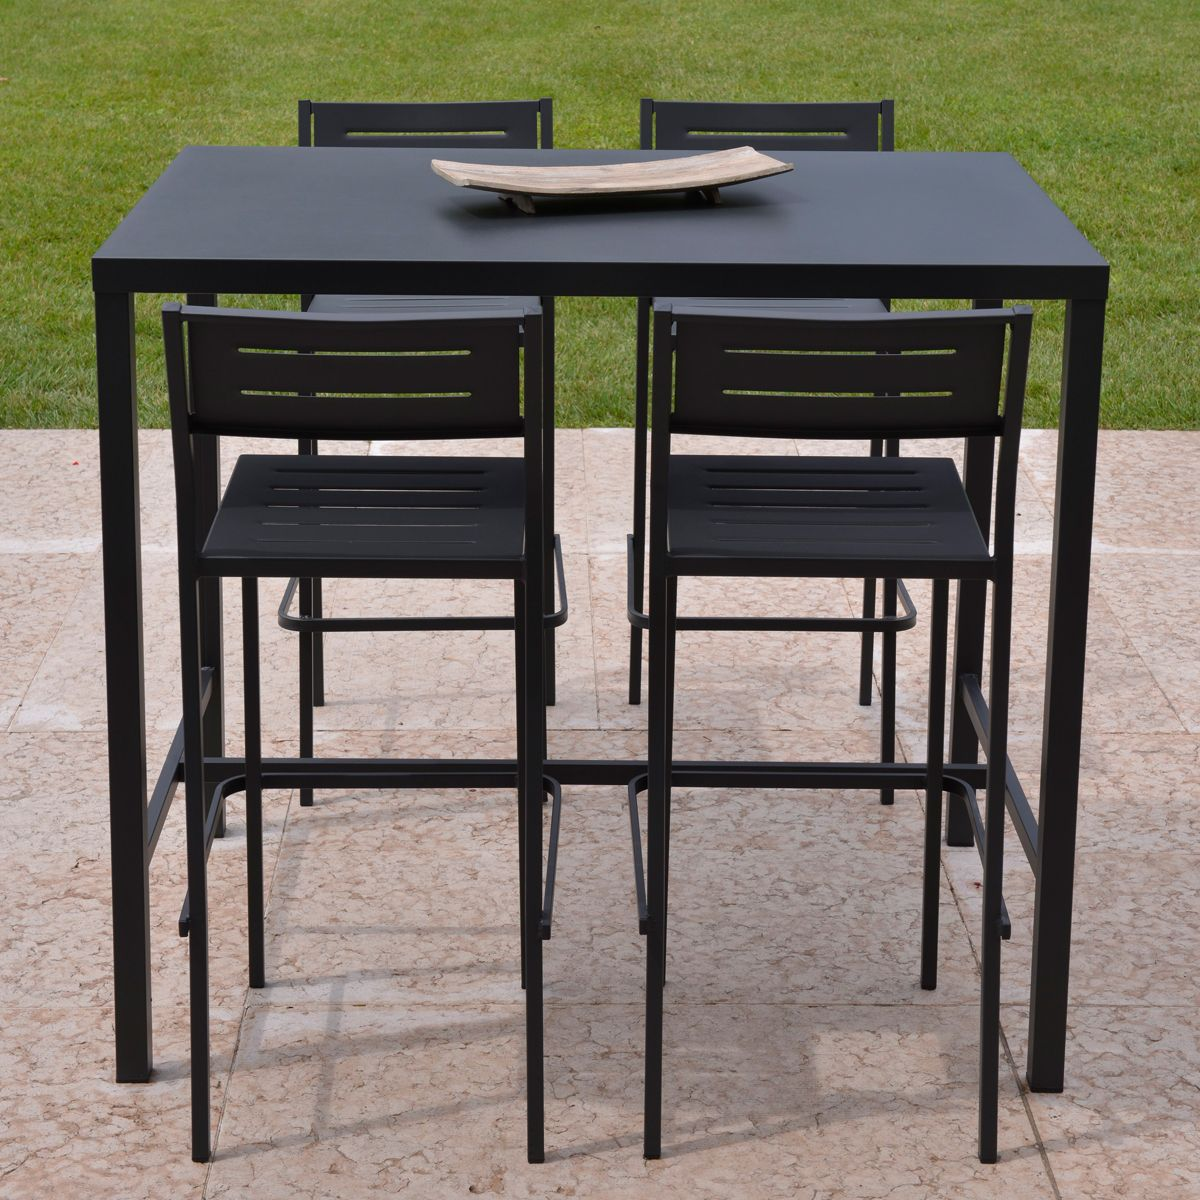 Ensemble de jardin table haute tabouret dorio rd italia for Ensemble table jardin